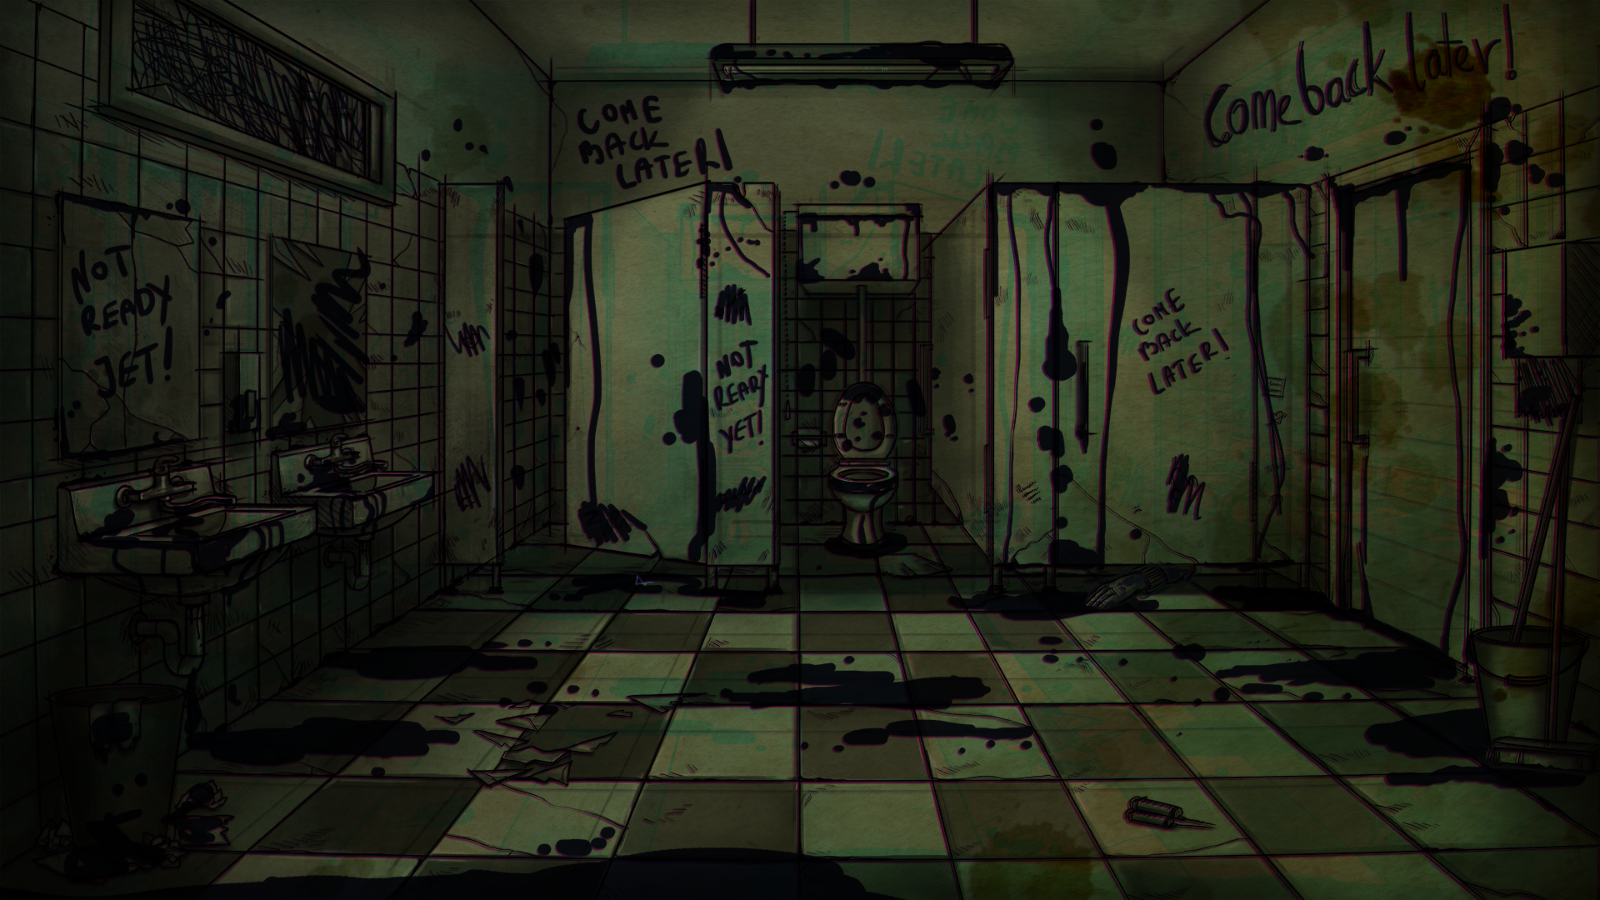 Bad Dream: Fever - School bathroom